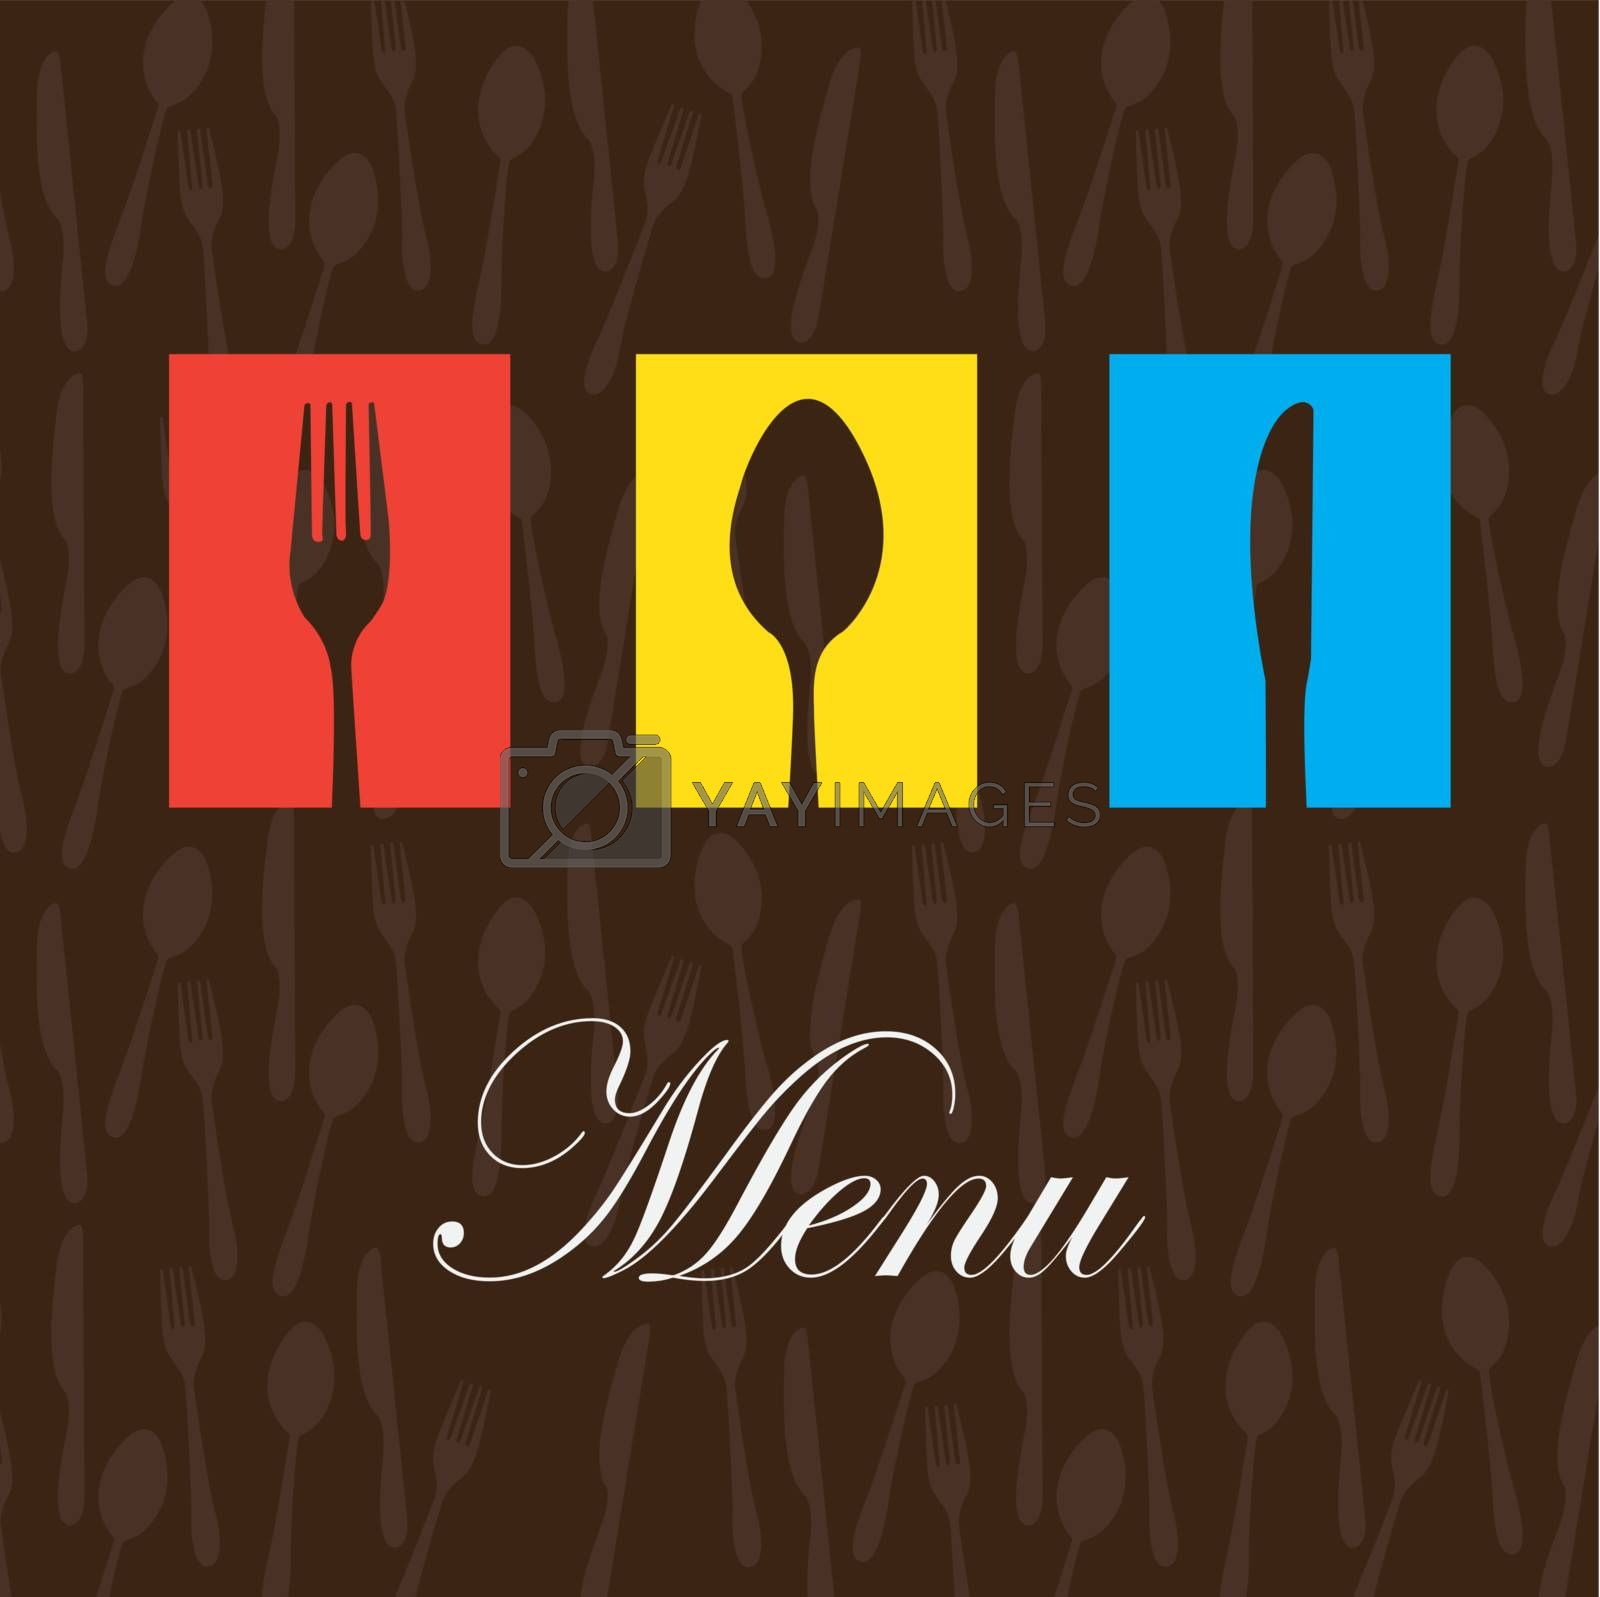 Cutlery colors over brown background vector illustration